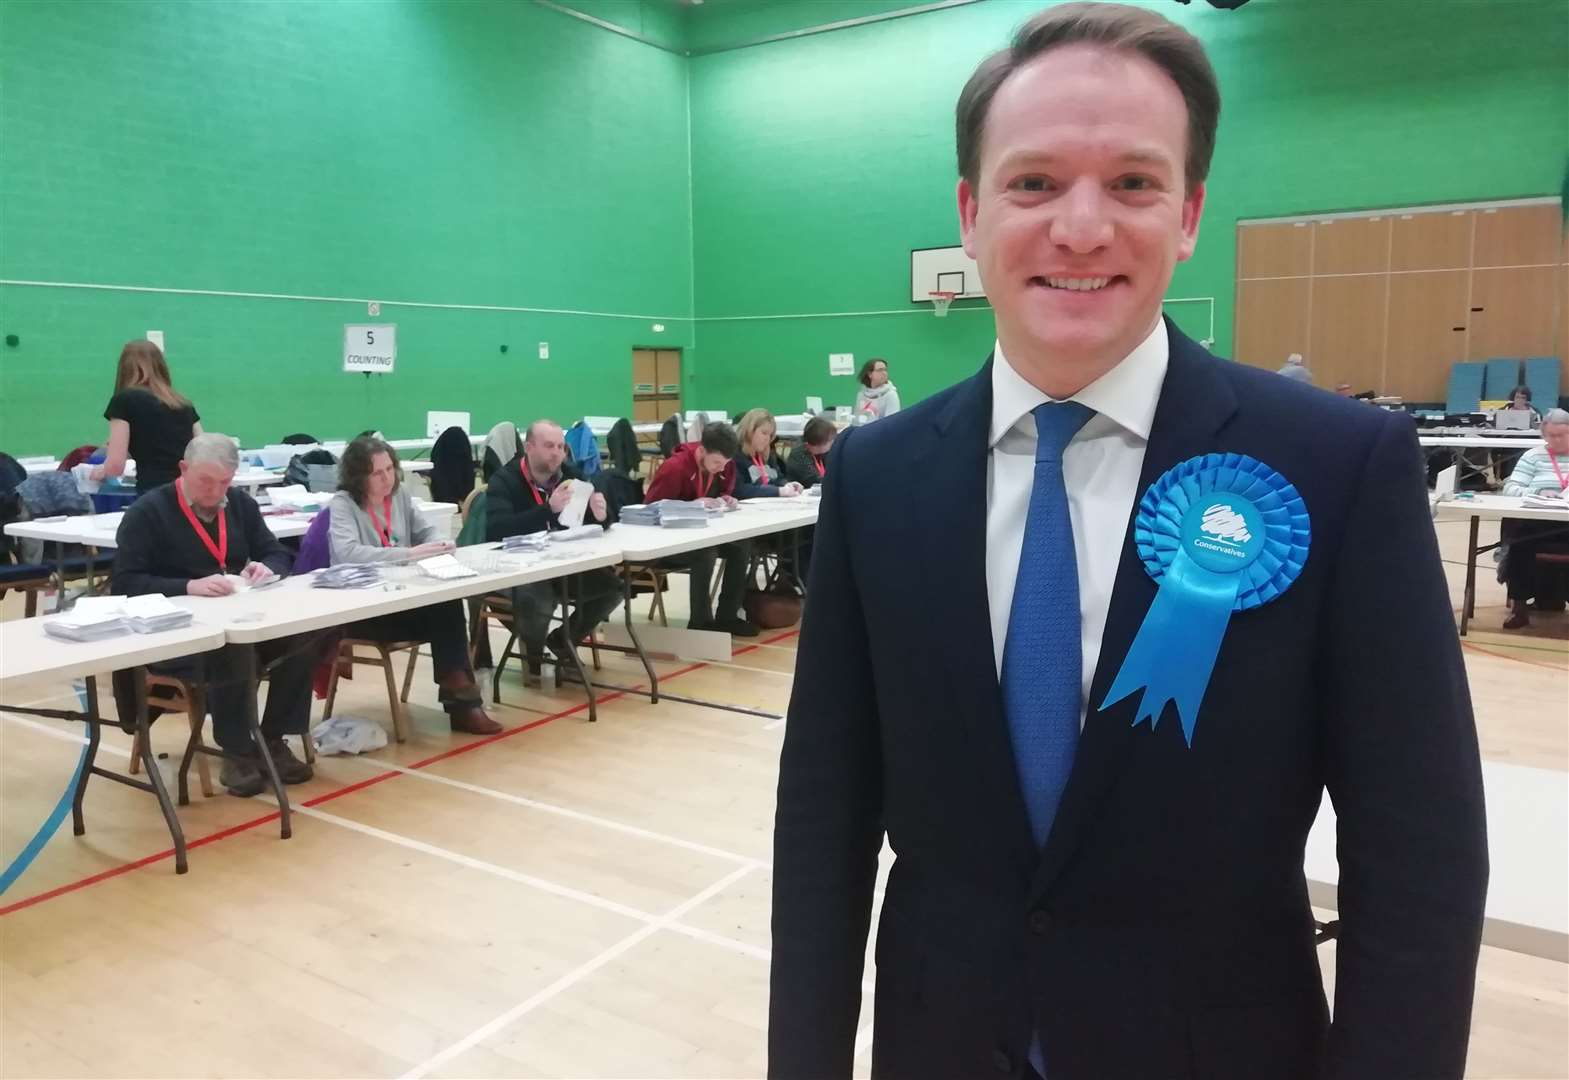 General Election 2019: The new MP for Grantham and Stamford is announced